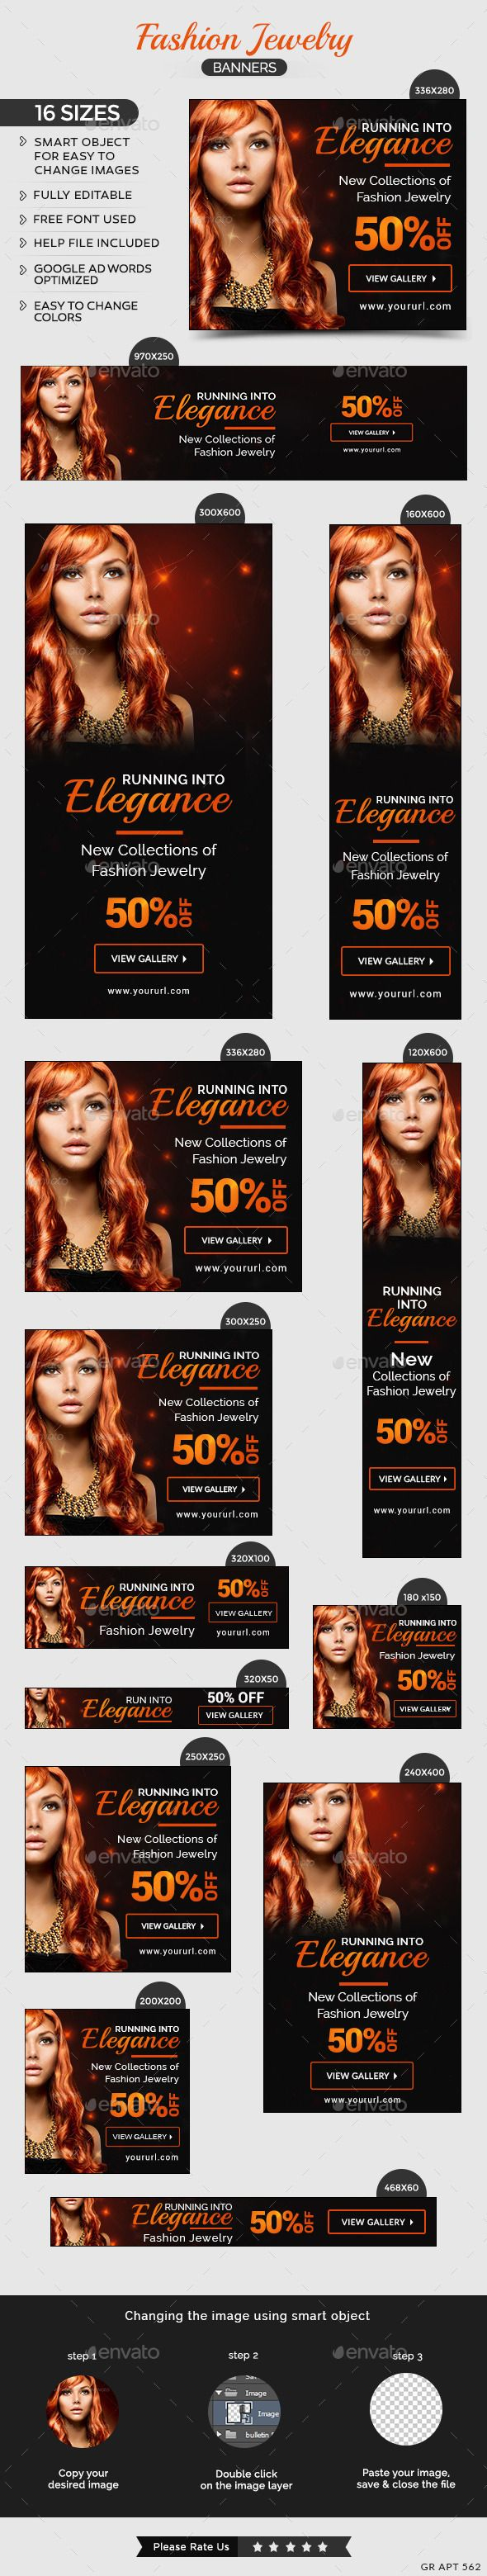 Fashion Jewelry Web Banners Template. Download: http://graphicriver.net/item/fashion-jewelry-banners/11257627?ref=ksioks